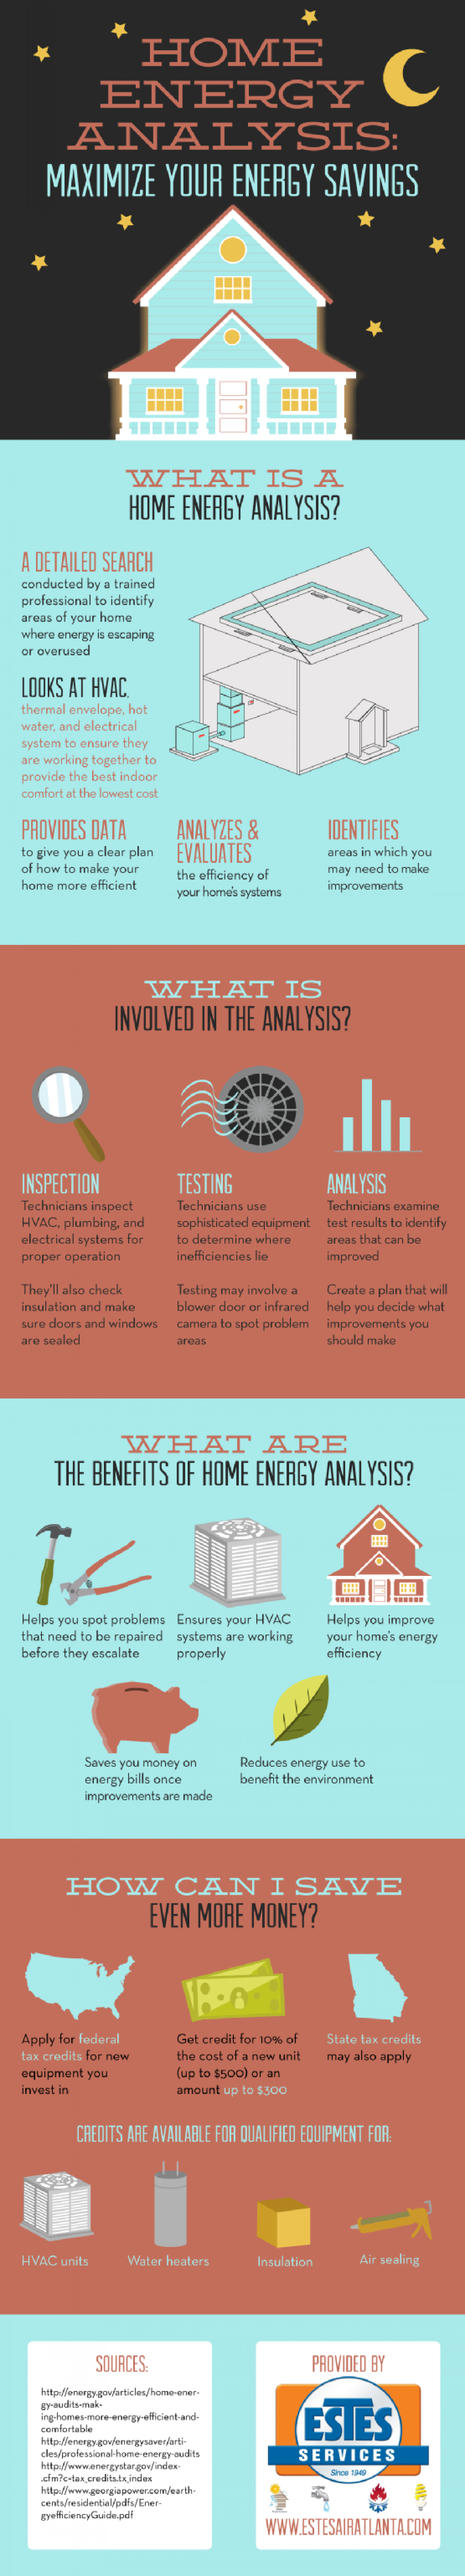 Home Energy Analysis: Maximize Your Energy Savings Infographic